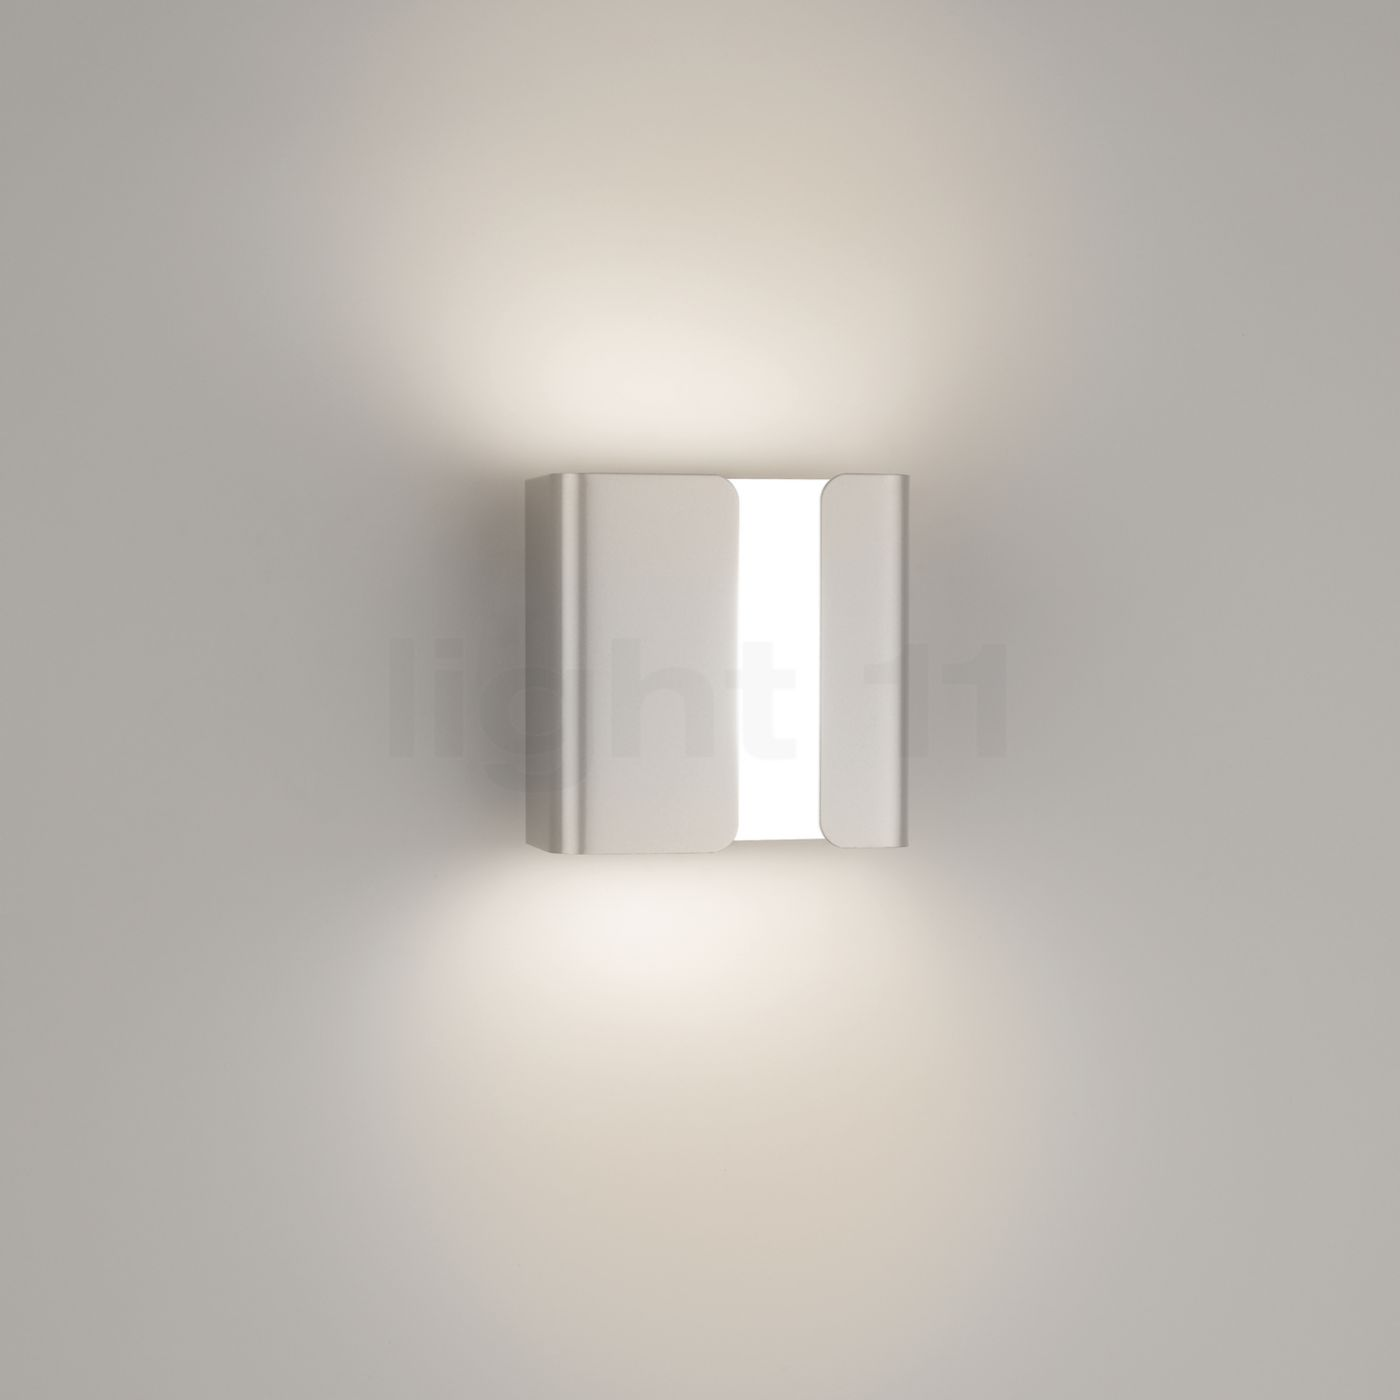 Buy philips novum wall light led at light11 mozeypictures Image collections